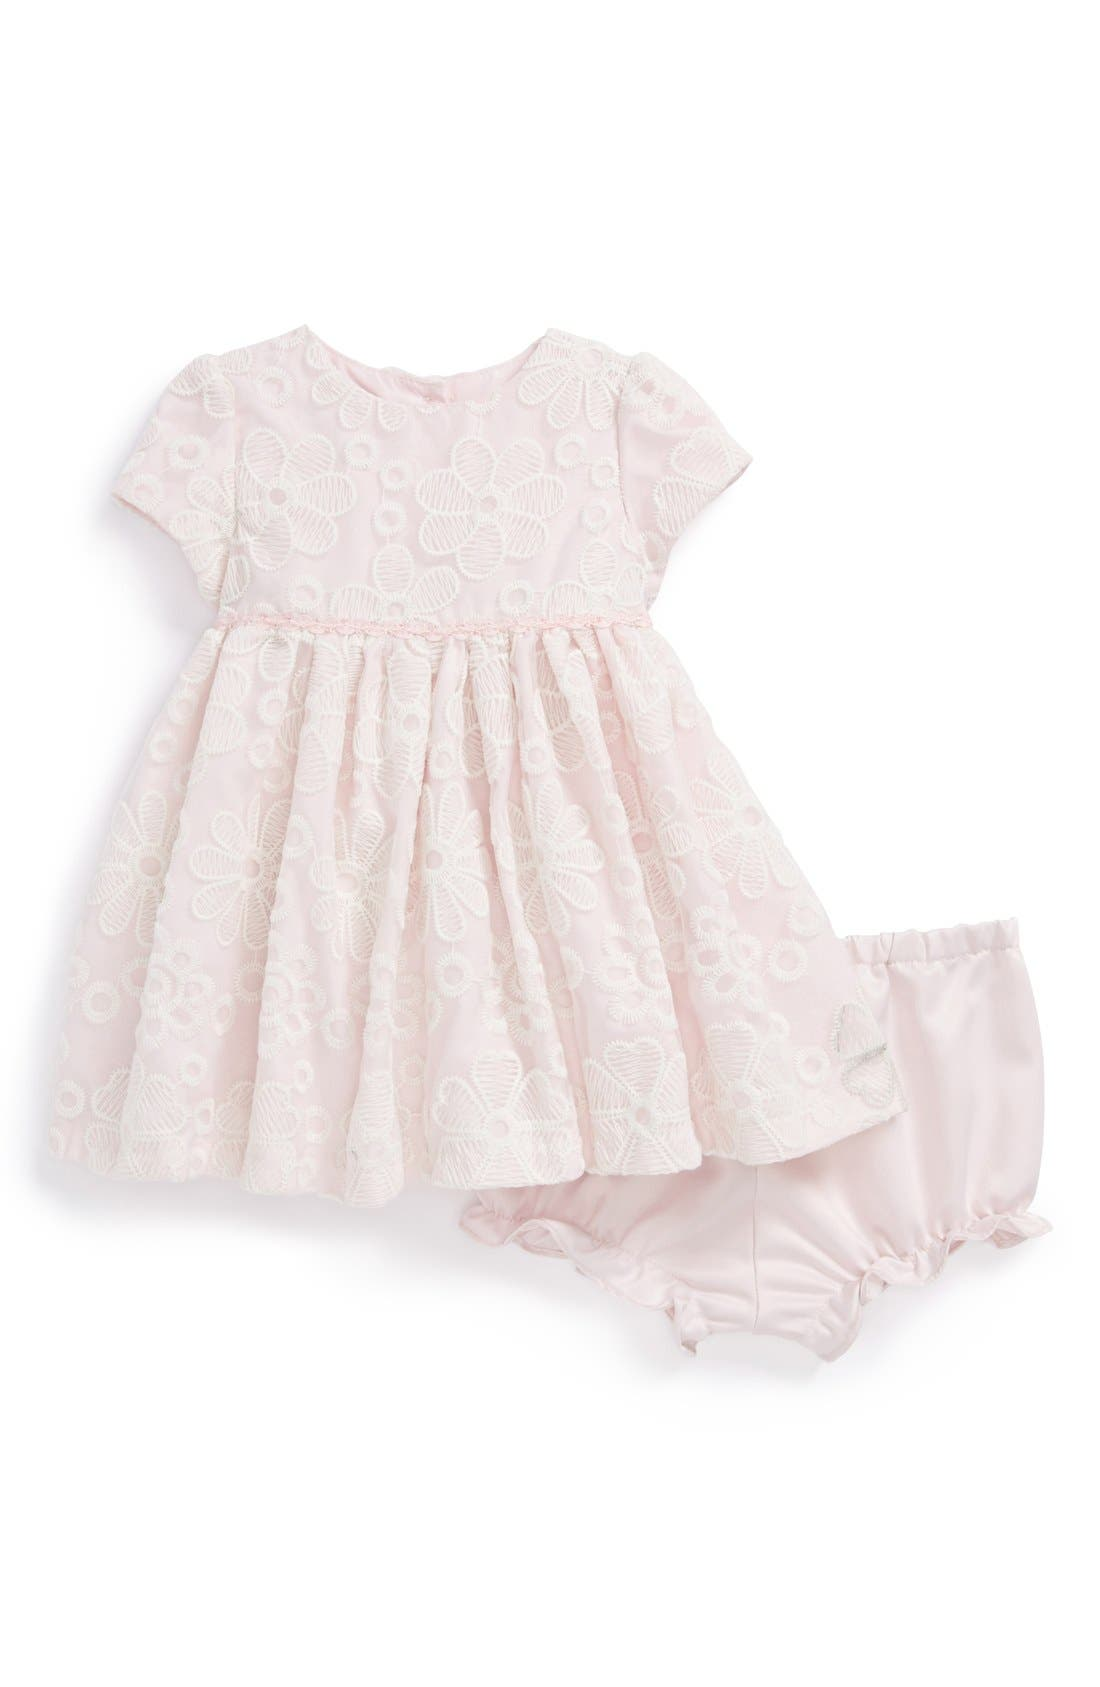 Alternate Image 1 Selected - Pippa & Julie Flower Lace Dress (Baby Girls)